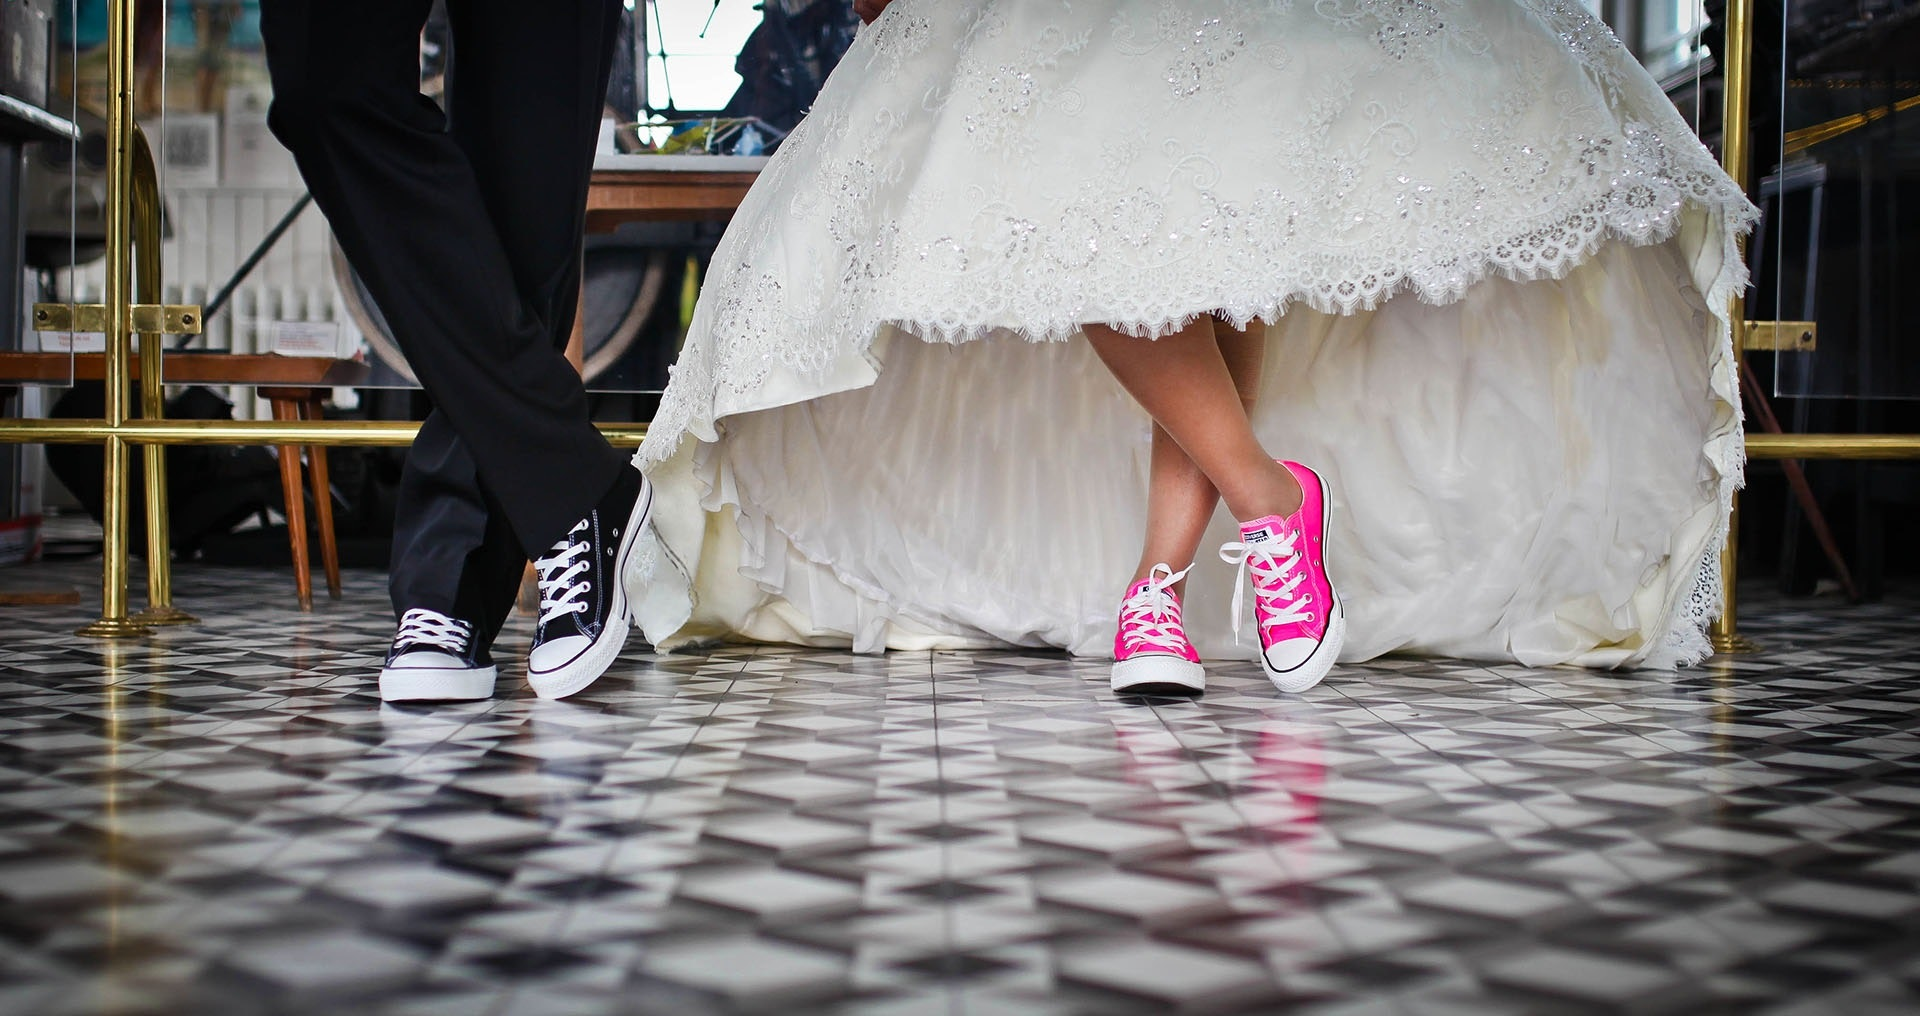 Woman Wearing Pink and White Low Top Shoes Dancing Beside Man, Bridal, Couple, Footwear, Marriage, HQ Photo